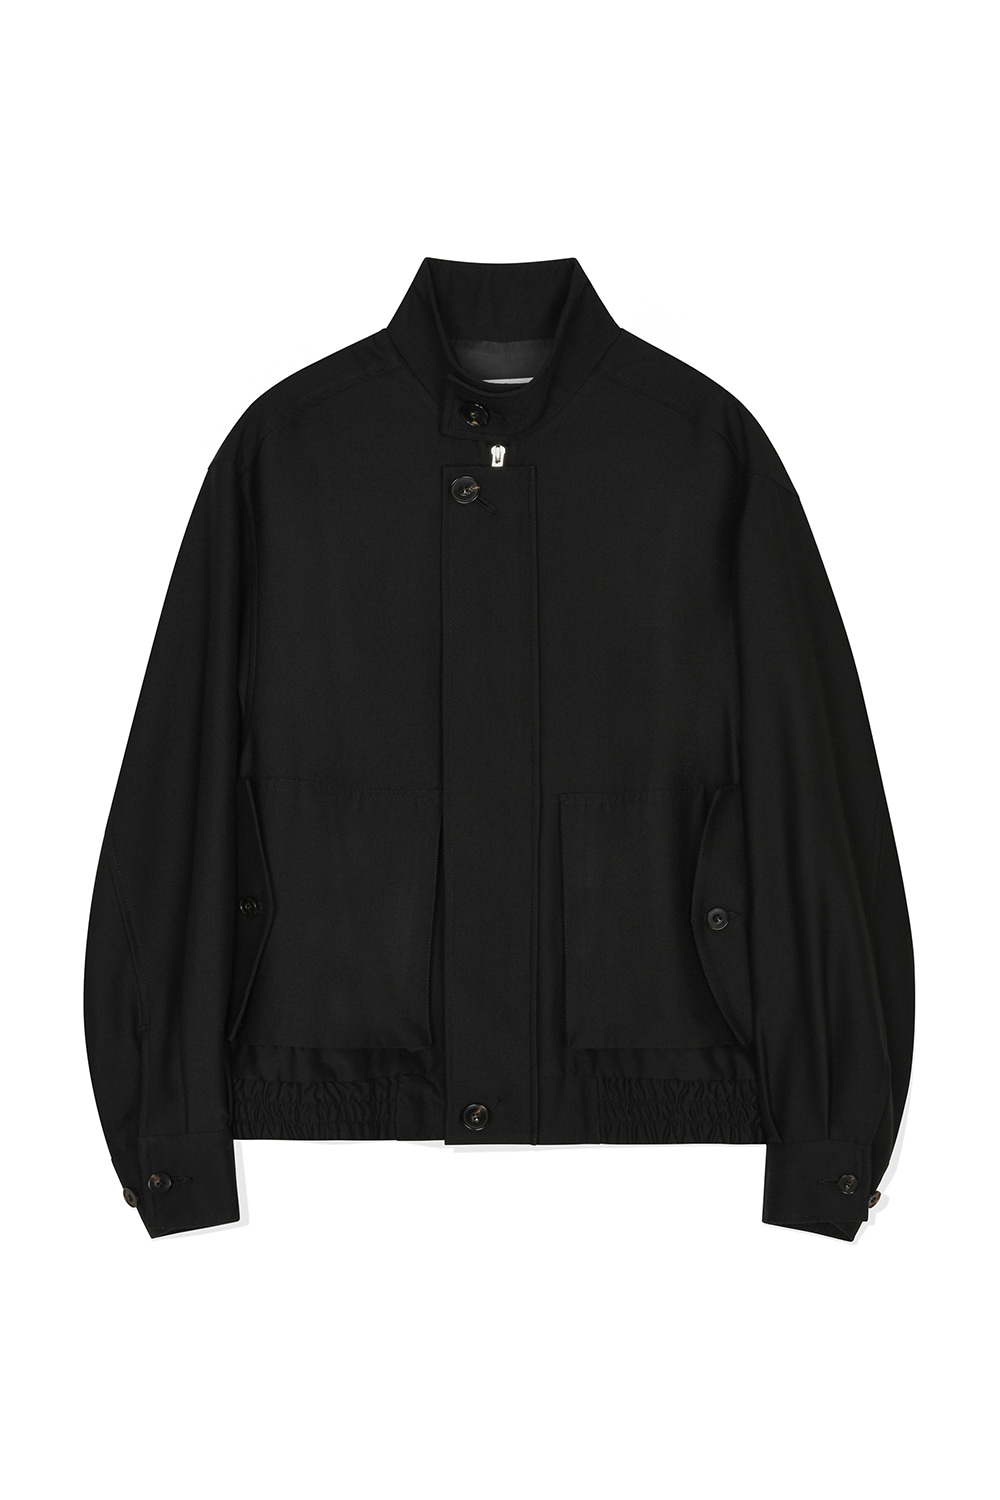 Wool Harrington Jacket Women JA [Black] -10%